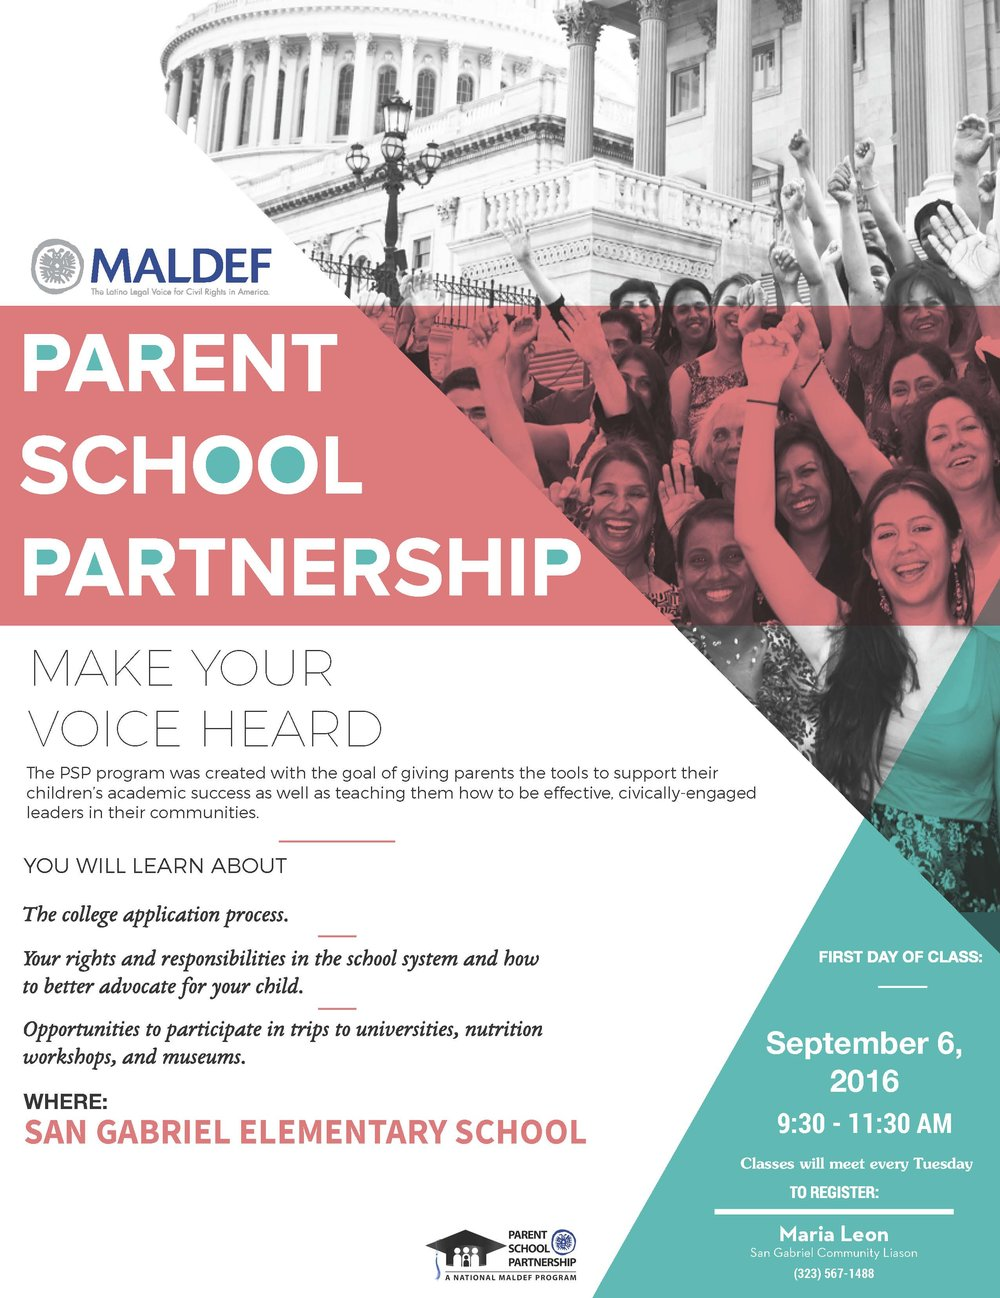 Parent School Partnership - PSP Program Classes Flyer   Redesigned flyer template for PSP Program's classes.  2016